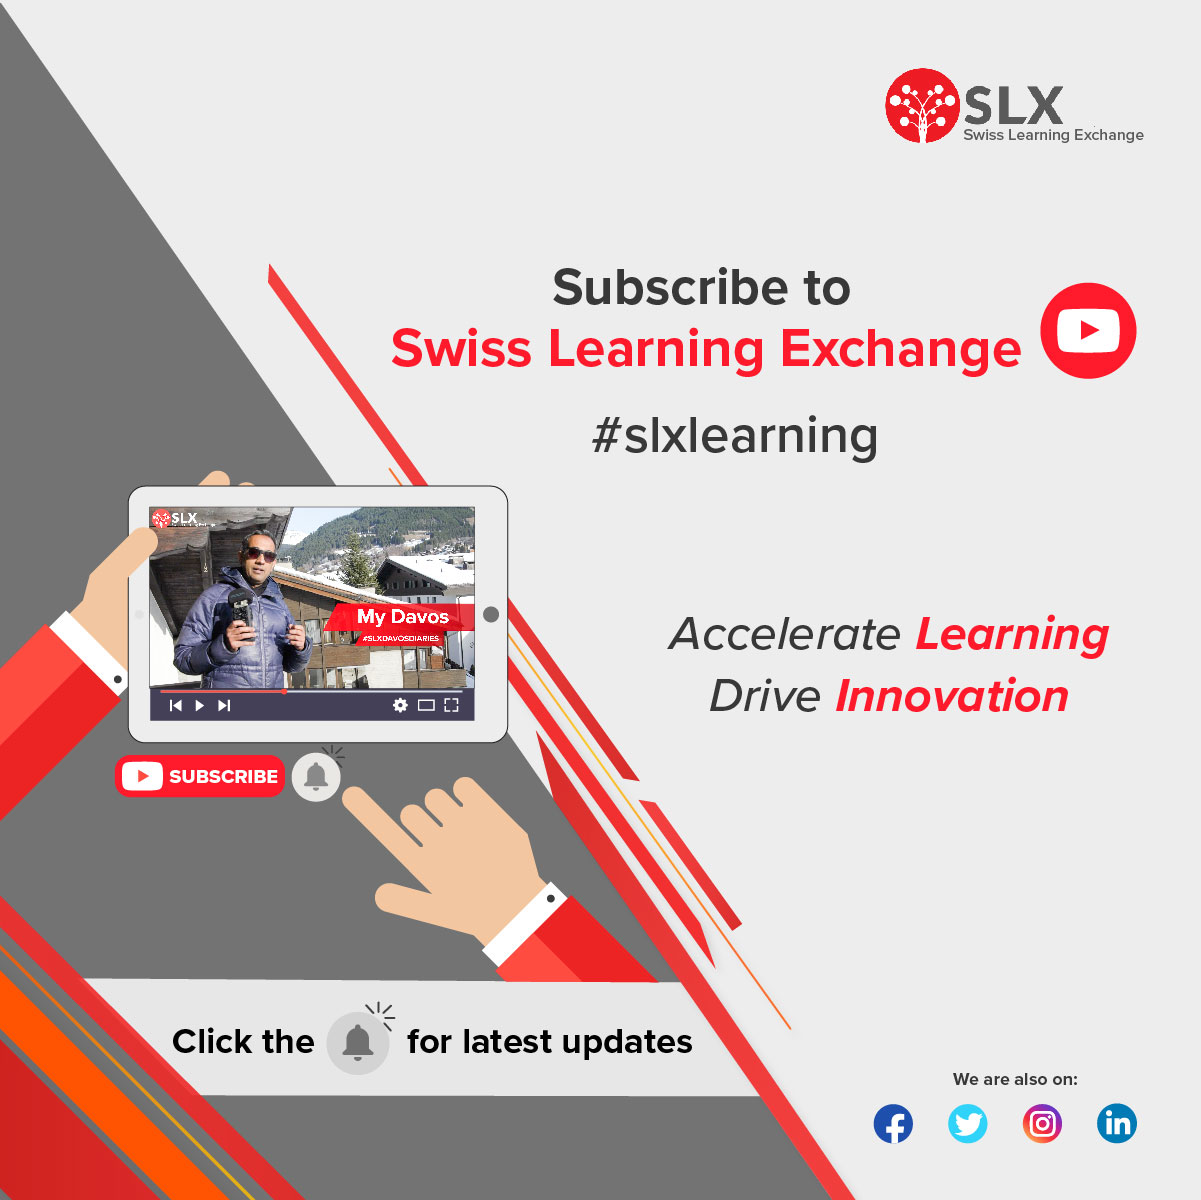 Subscribe to Swiss Learning Exchange